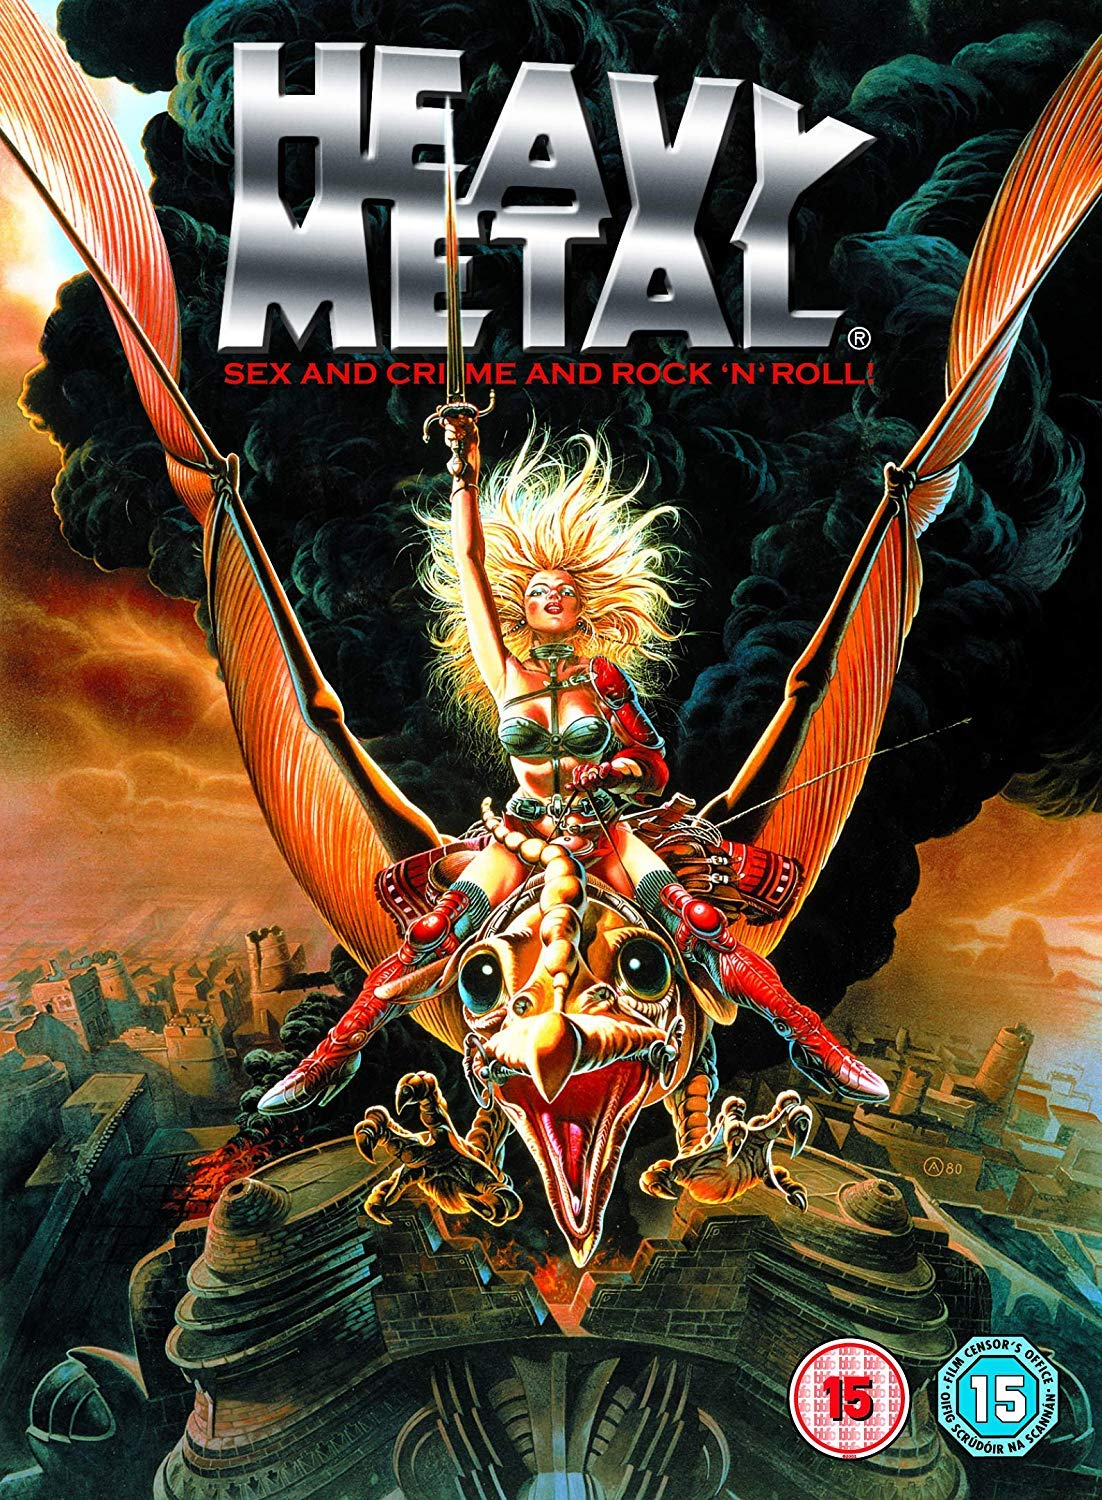 Heavy Metal [DVD] [Reino Unido]: Amazon.es: Richard Romanus, John Candy, Joe Flaherty, Gerald Potterton, John Bruno, Richard Romanus, John Candy: Cine y Series TV